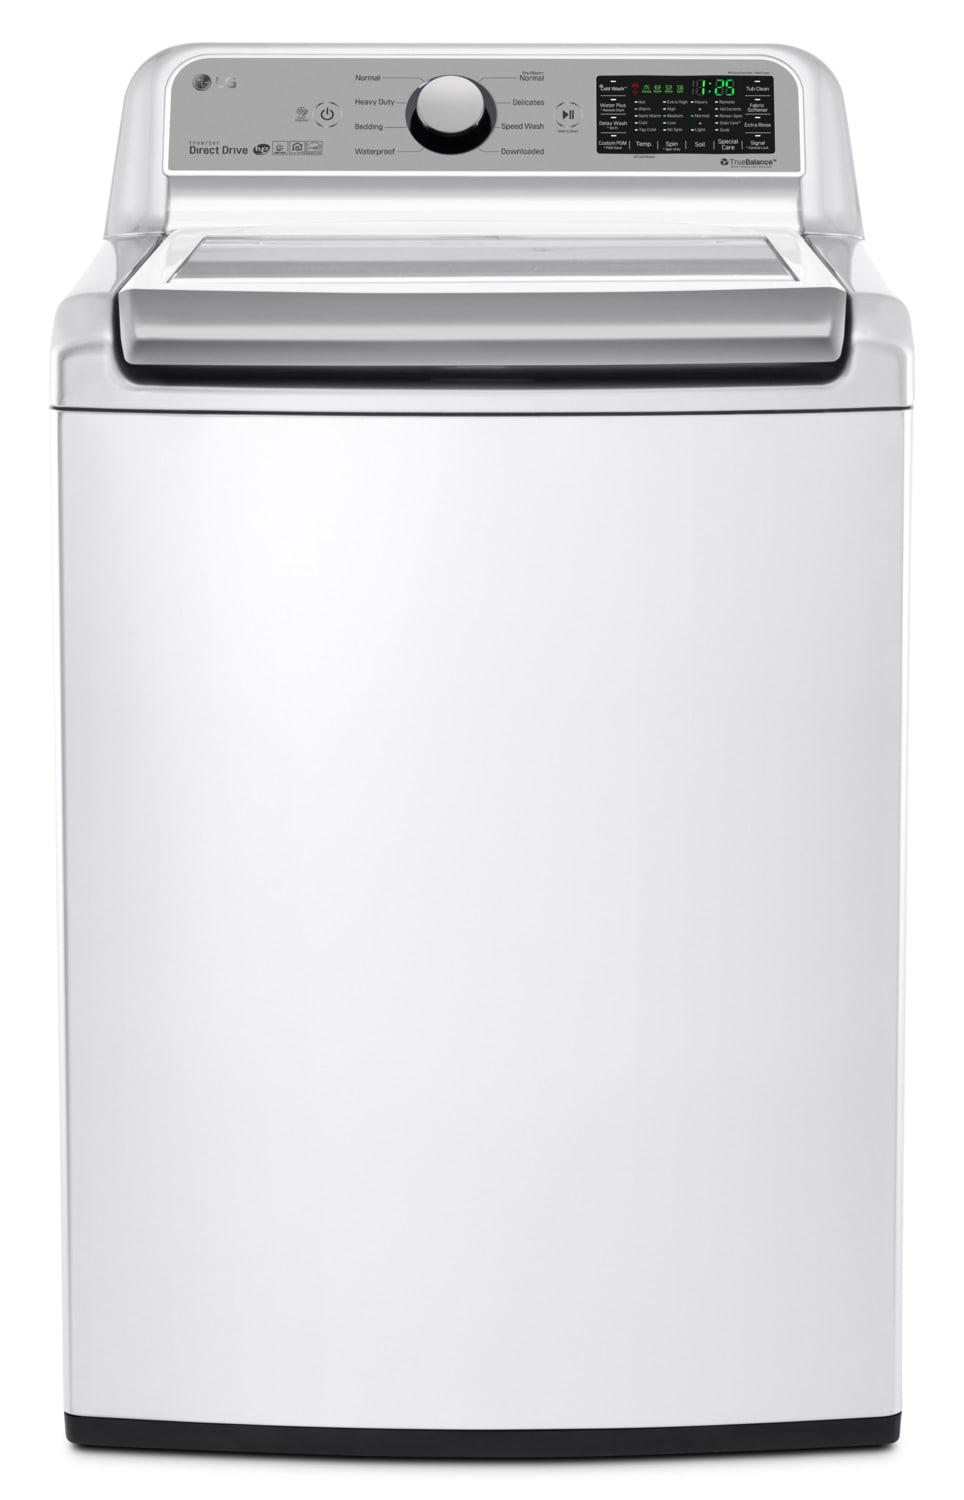 LG 5.8 Cu. Ft. Top-Load Washer with 6Motion™ Technology – WT7200CW